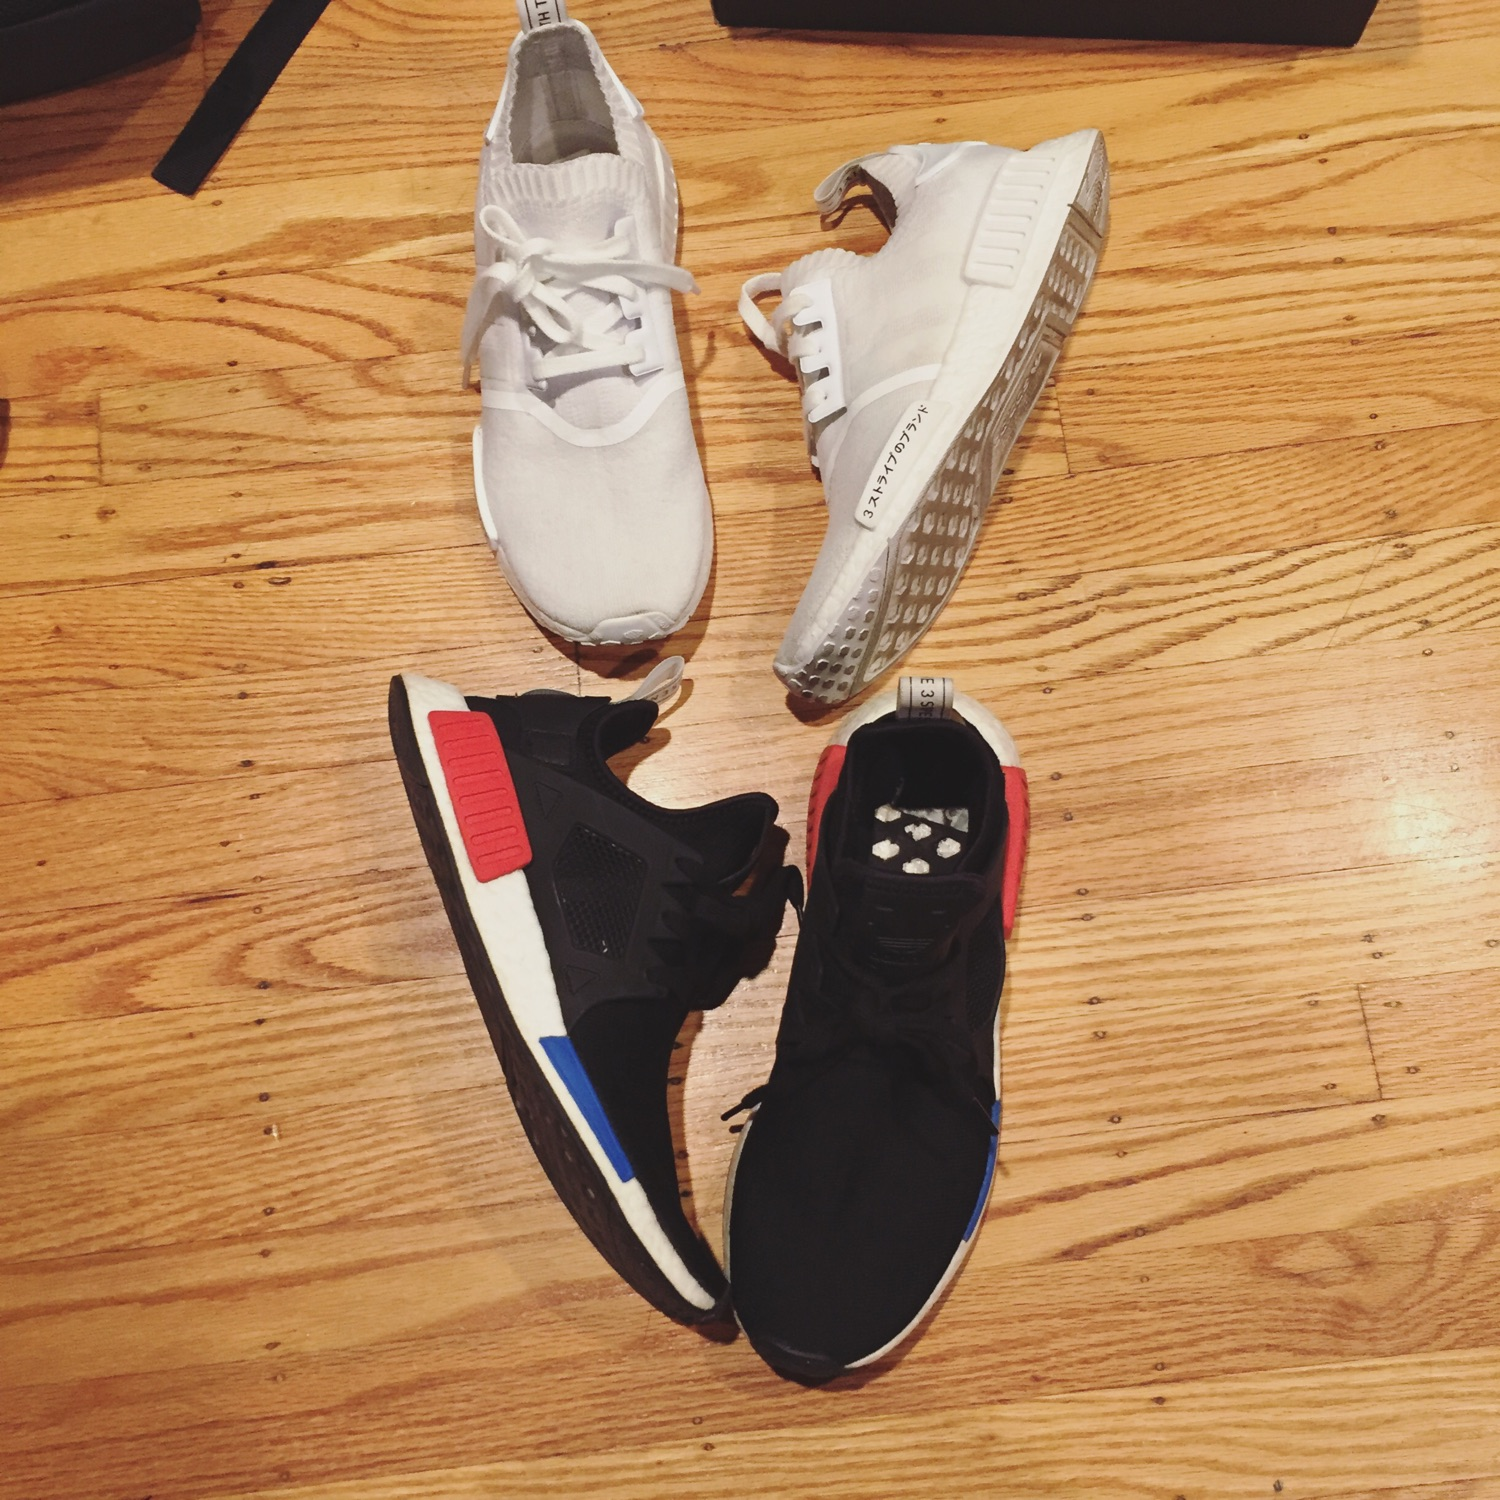 online store 294a3 fc362 Adidas Nmd Lot Size 9.5 10 Supreme Bape Off White